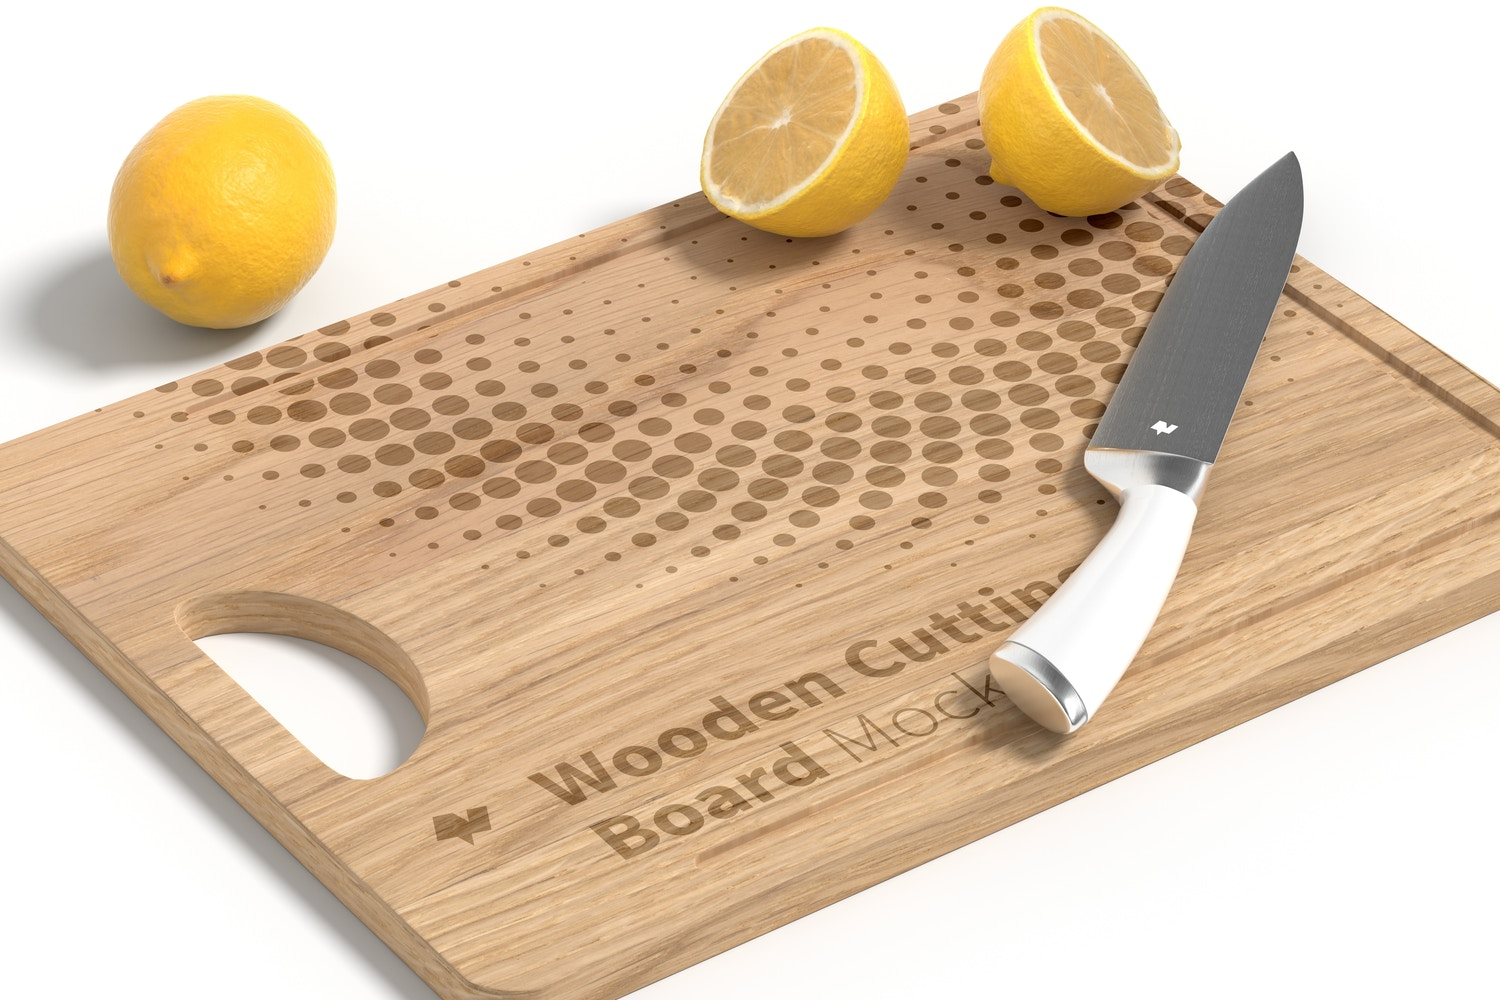 Wooden Cutting Board Mockup, Perspective